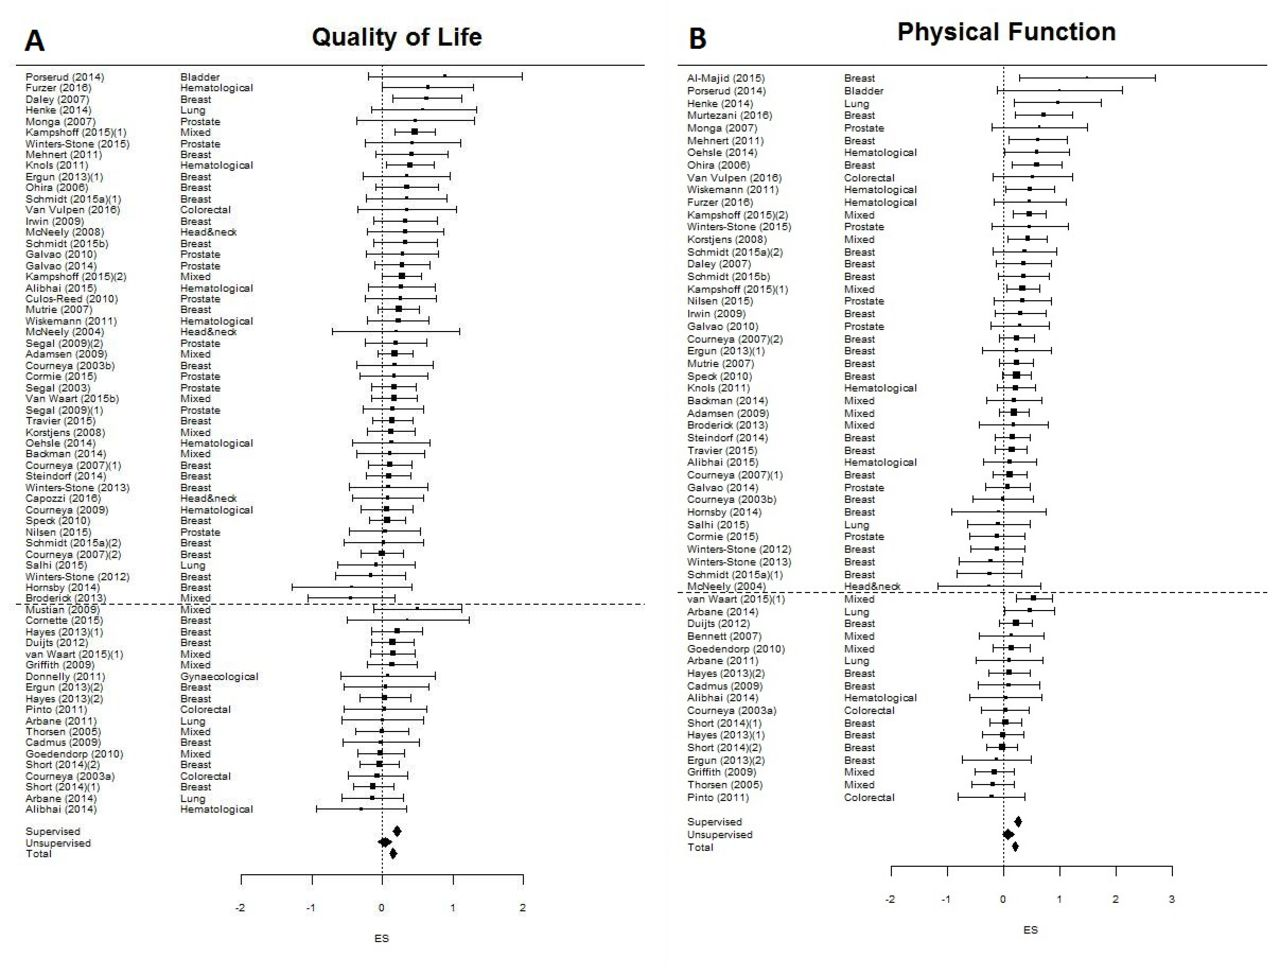 Which exercise prescriptions improve quality of life and